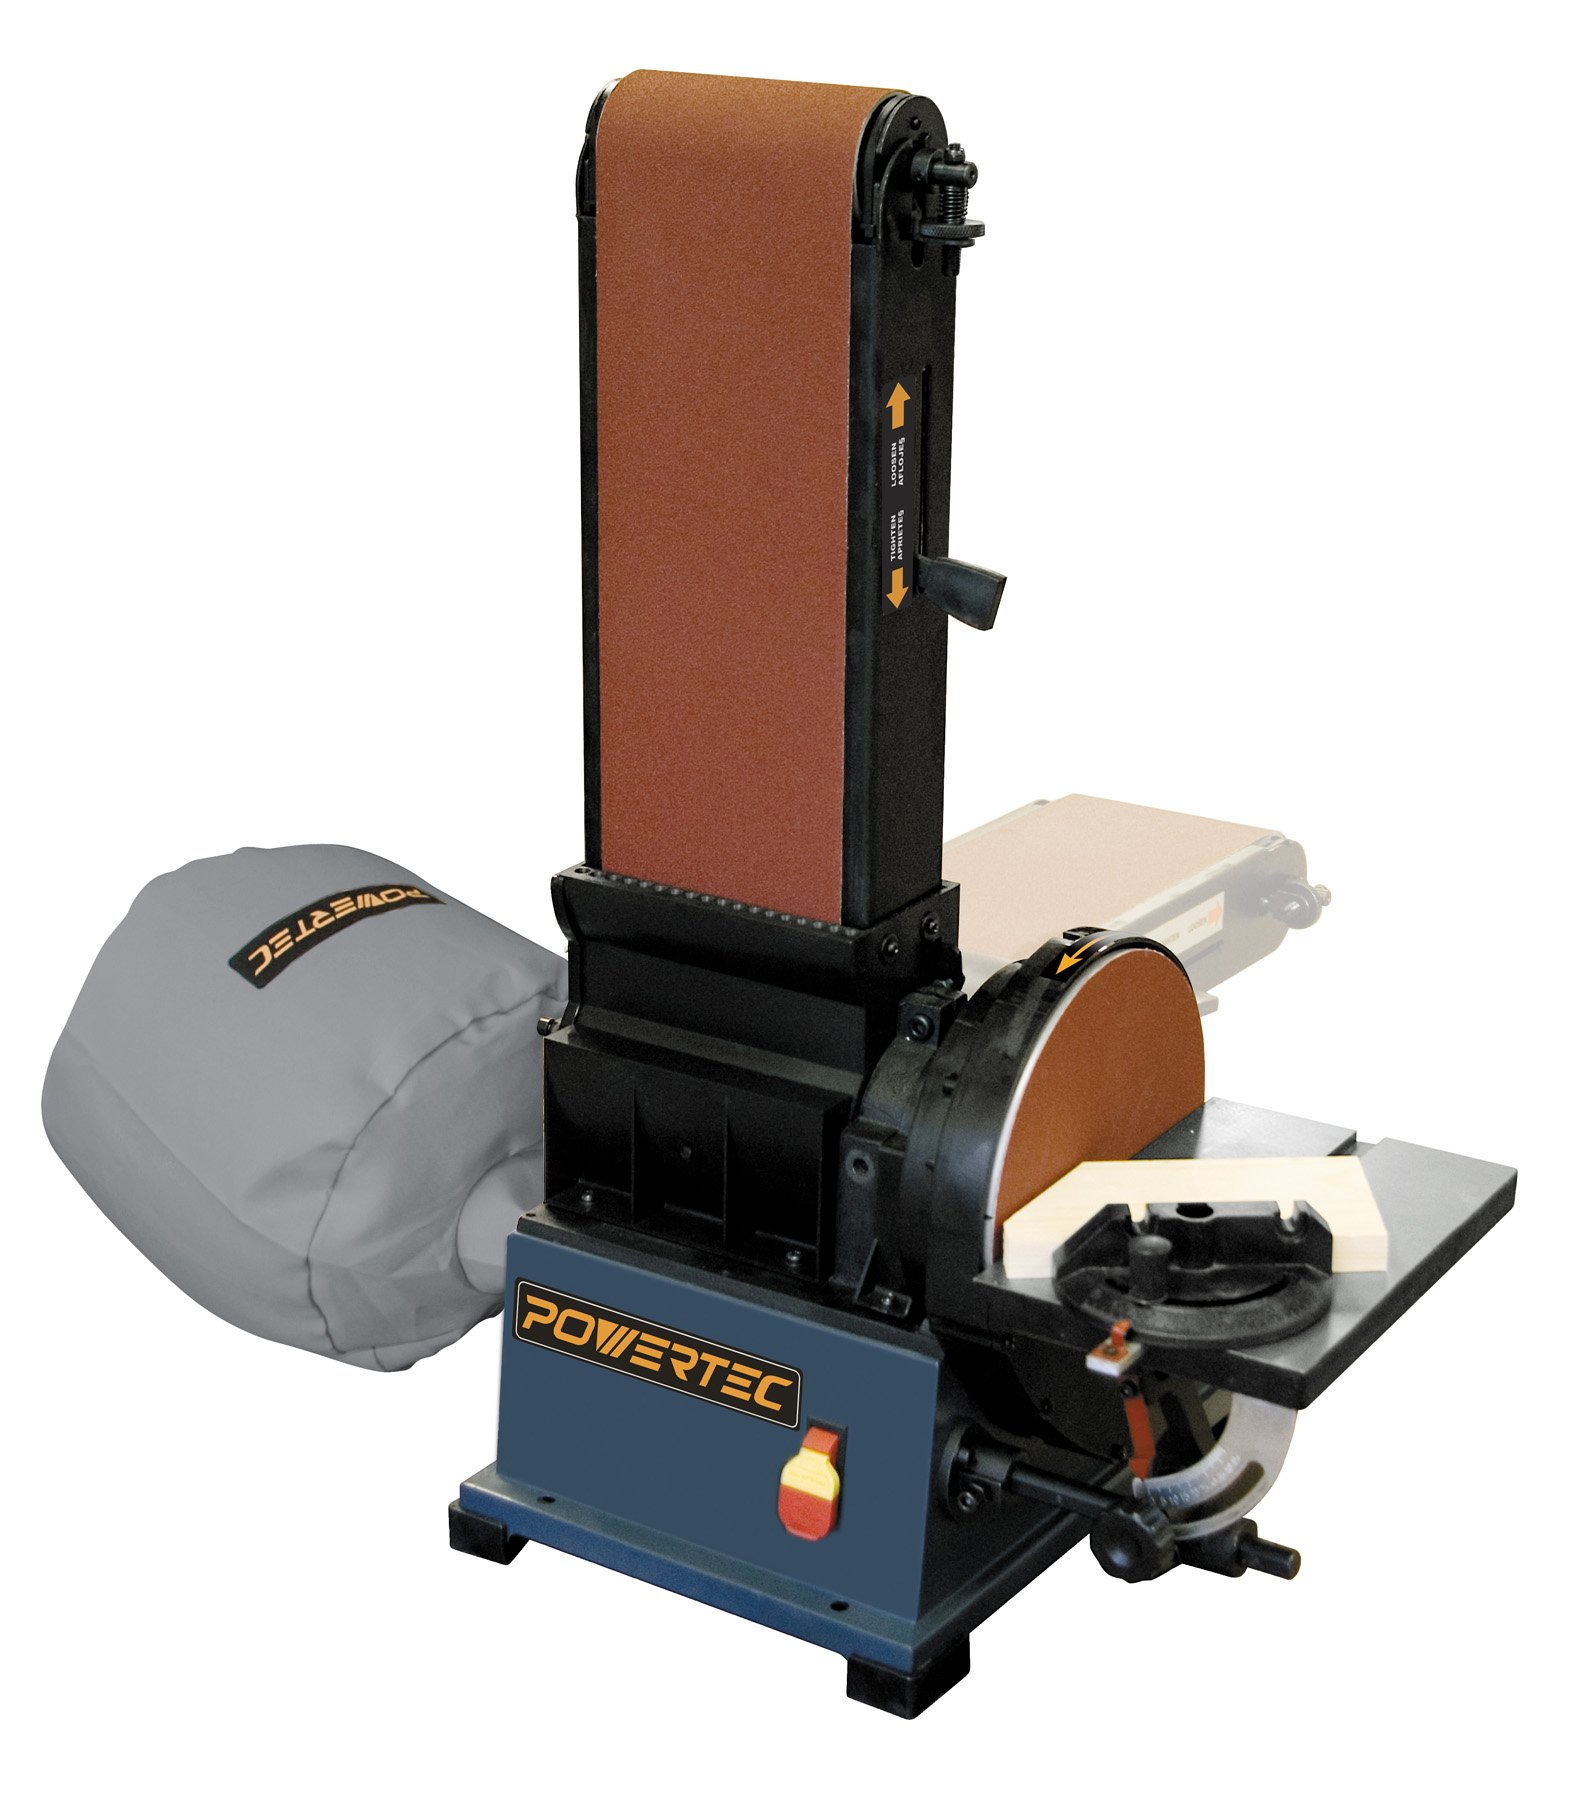 POWERTEC BD6900 Woodworking Belt Disc Sander w/ Built-In Dust Collection, 6 x 9-Inch by POWERTEC